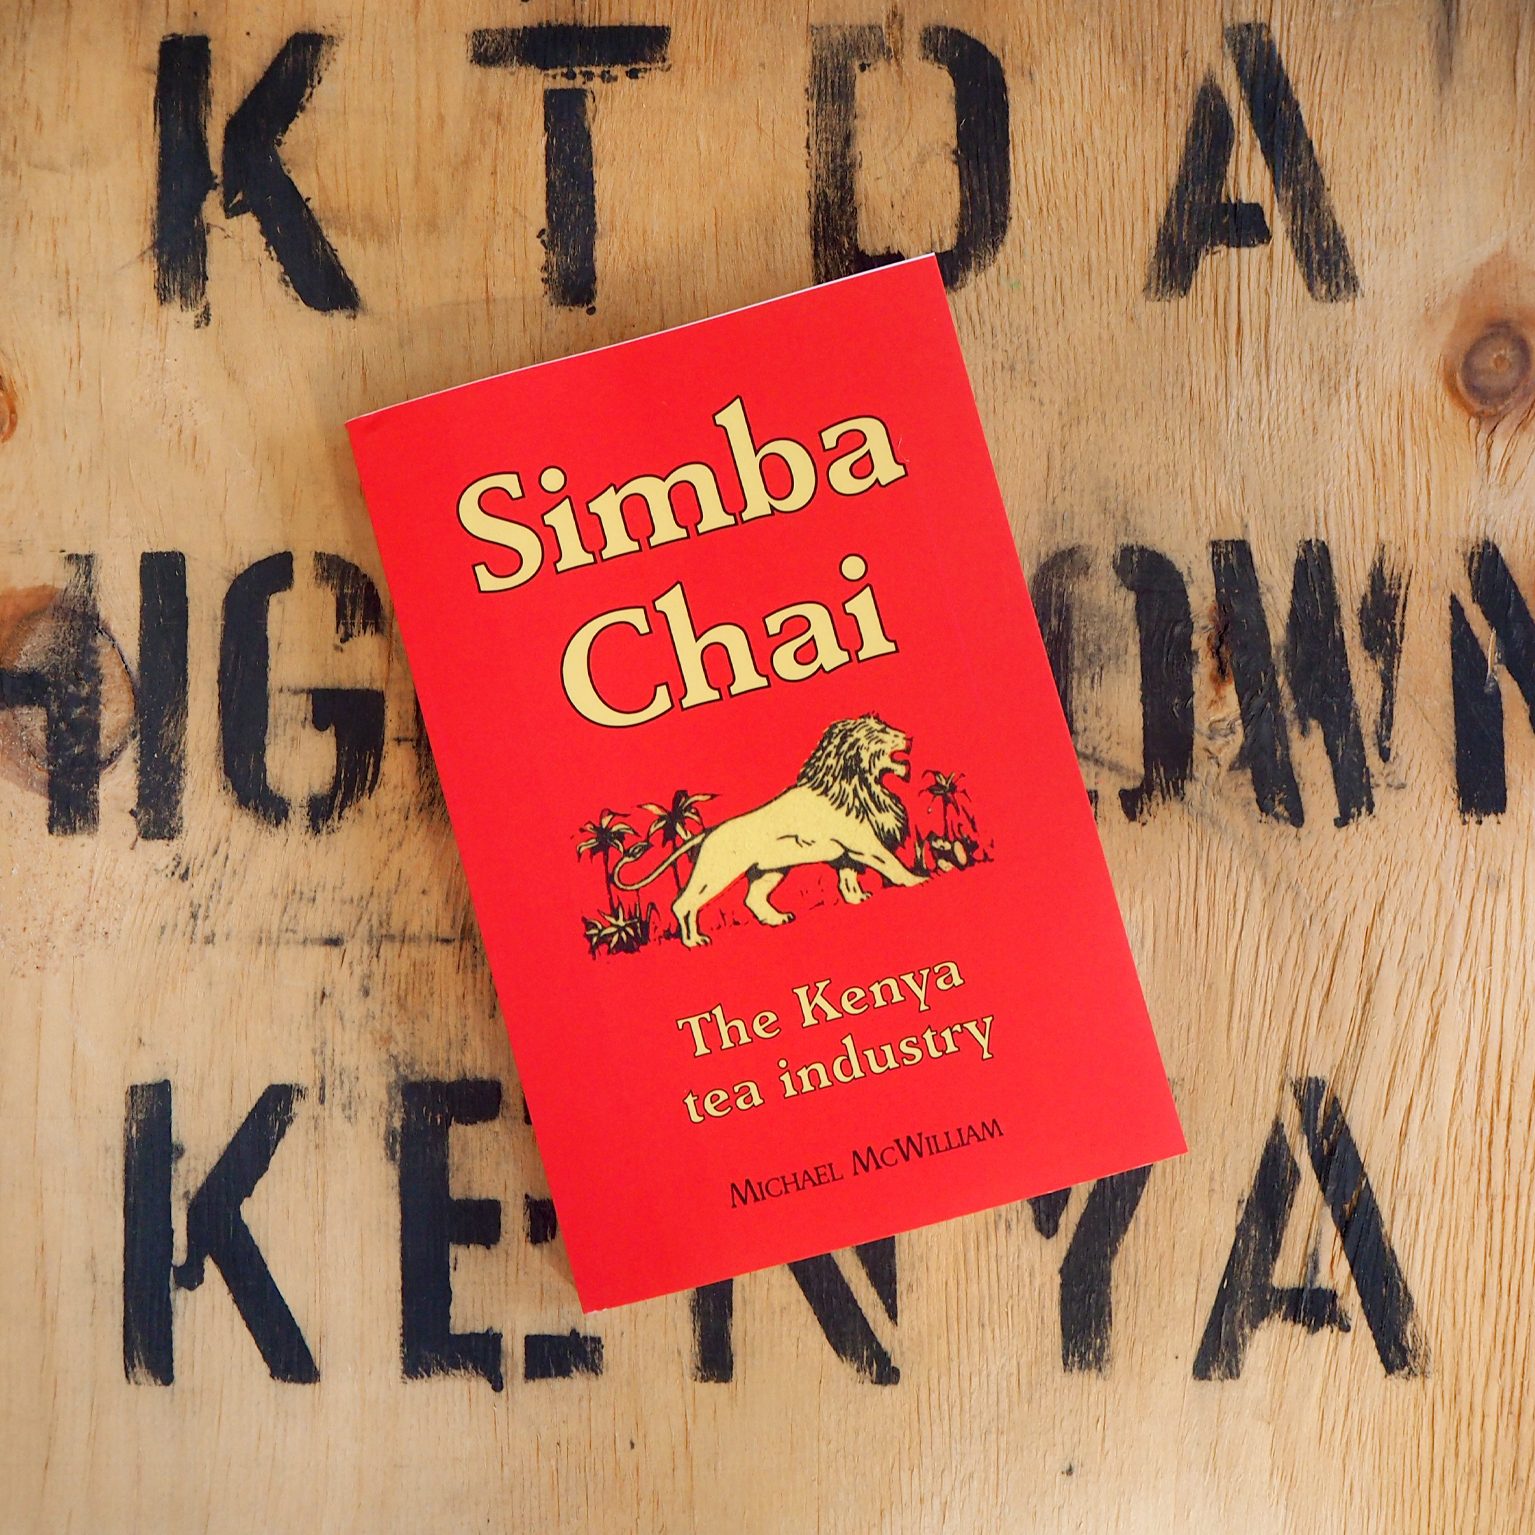 Simba Chai By Sir Michael McWilliam